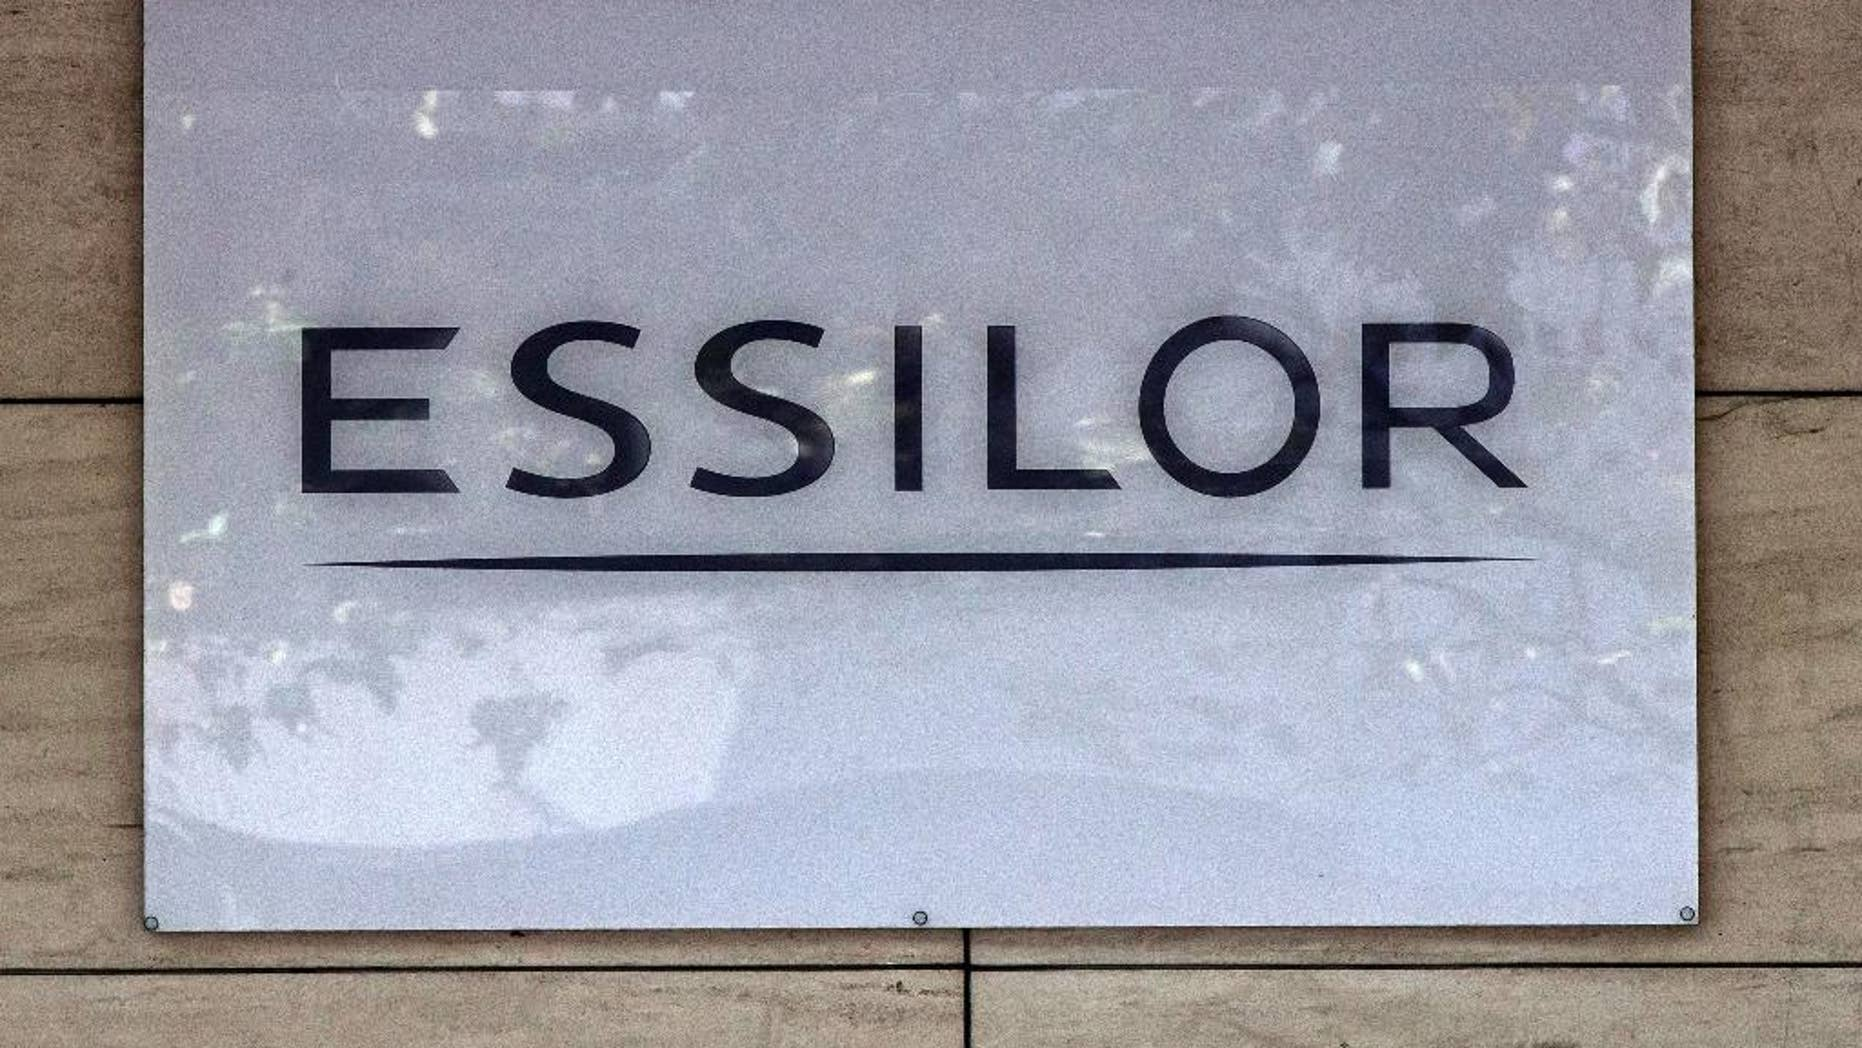 This Thursday, Sept. 22, 2016 photo shows the logo of the Essilor a French ophthalmic optics company, in Charenton le Pont, east of Paris. Essilor International SA announced Monday Jan.16, 2017 it had reached a share exchange deal with Luxottica's main shareholder Delfin to create a combined company making both frames and lenses. (AP Photo/Michel Euler)